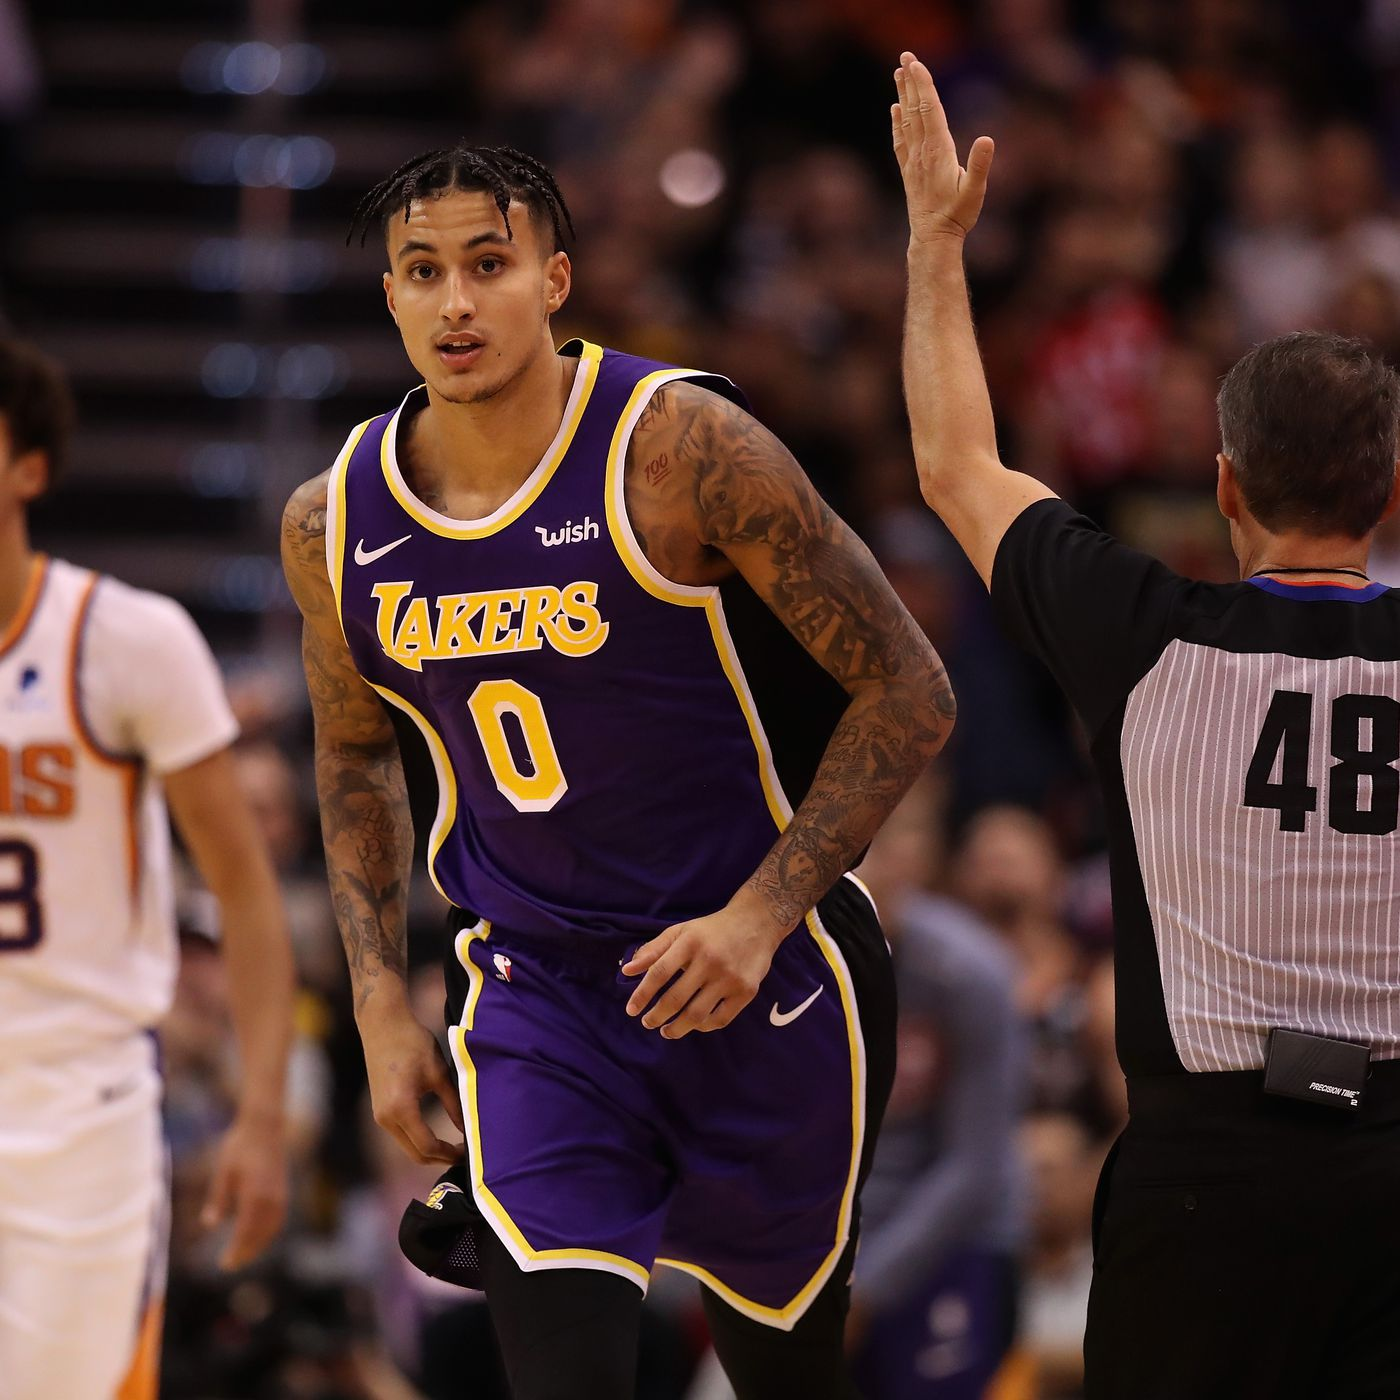 Lakers Highlights Kyle Kuzma Looked Like His Old Self In